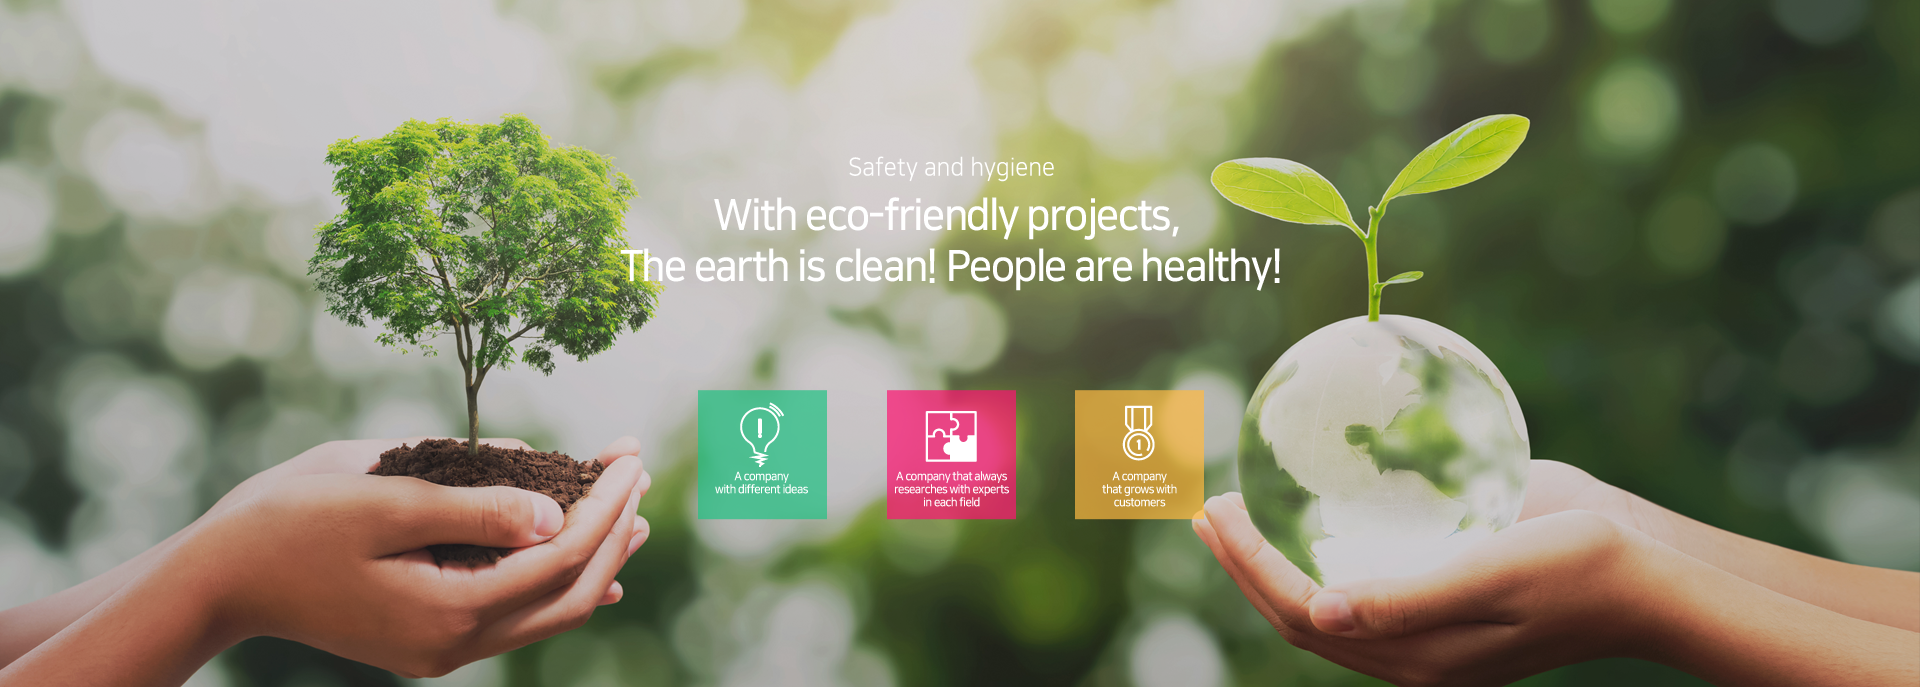 Safety and Hygiene - With eco-friendly projects, The earth is clean! People are healthy!